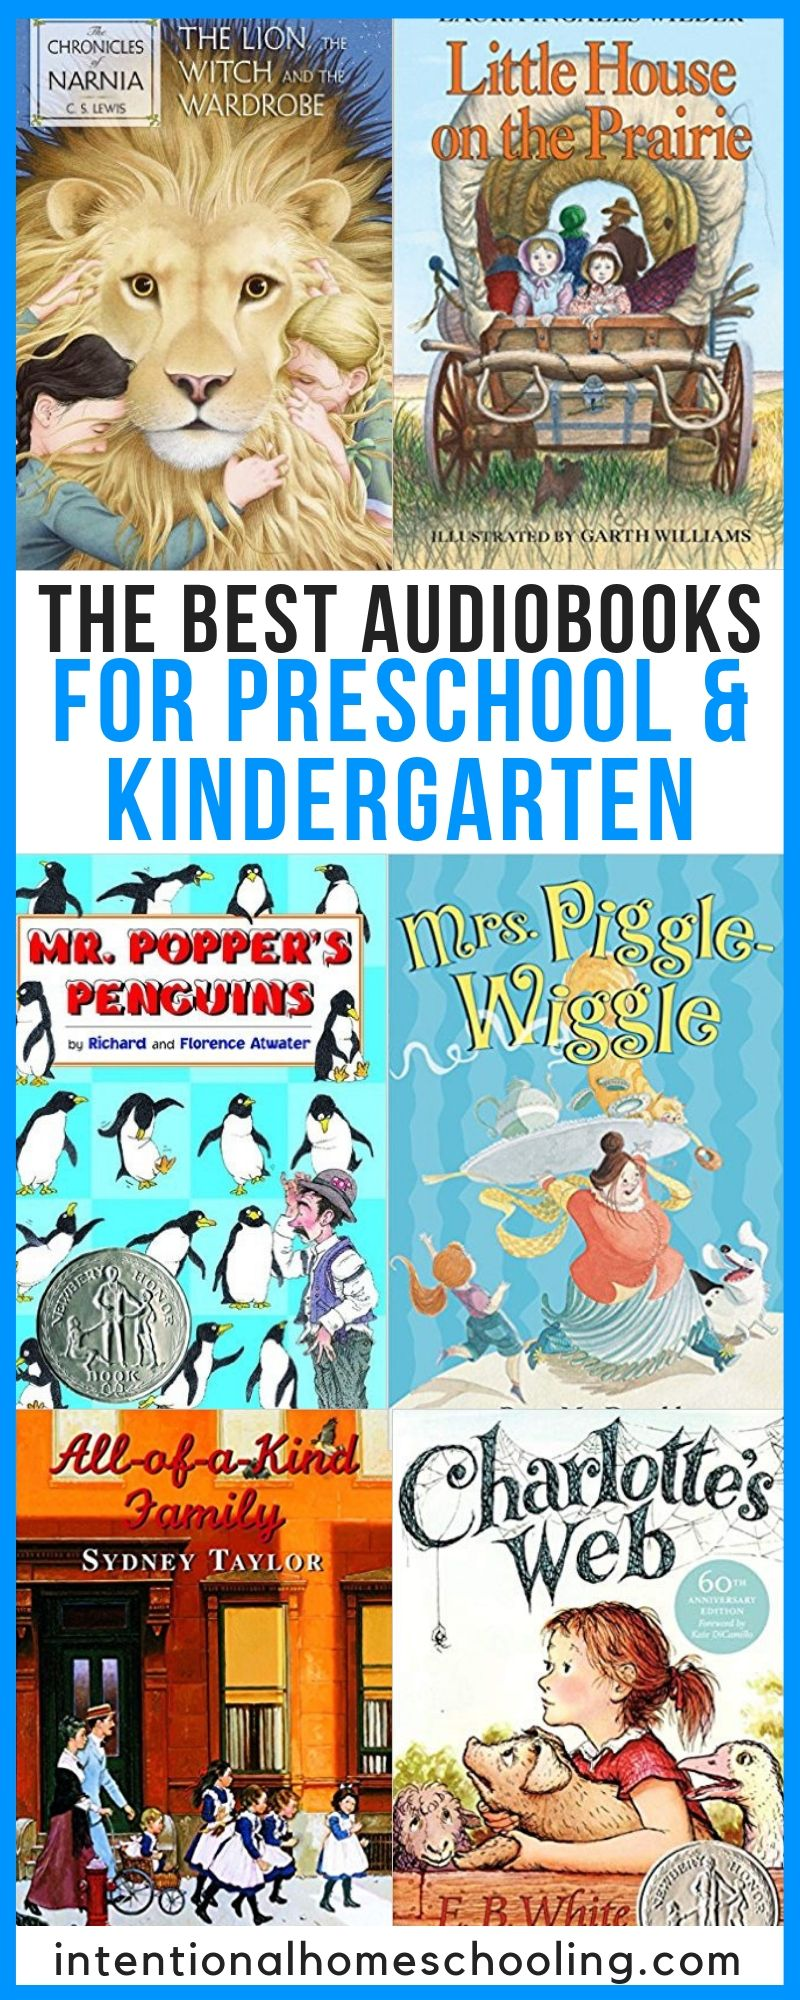 The Best Audiobooks for Preschool and Kindergarten - great for the whole family to listen to!